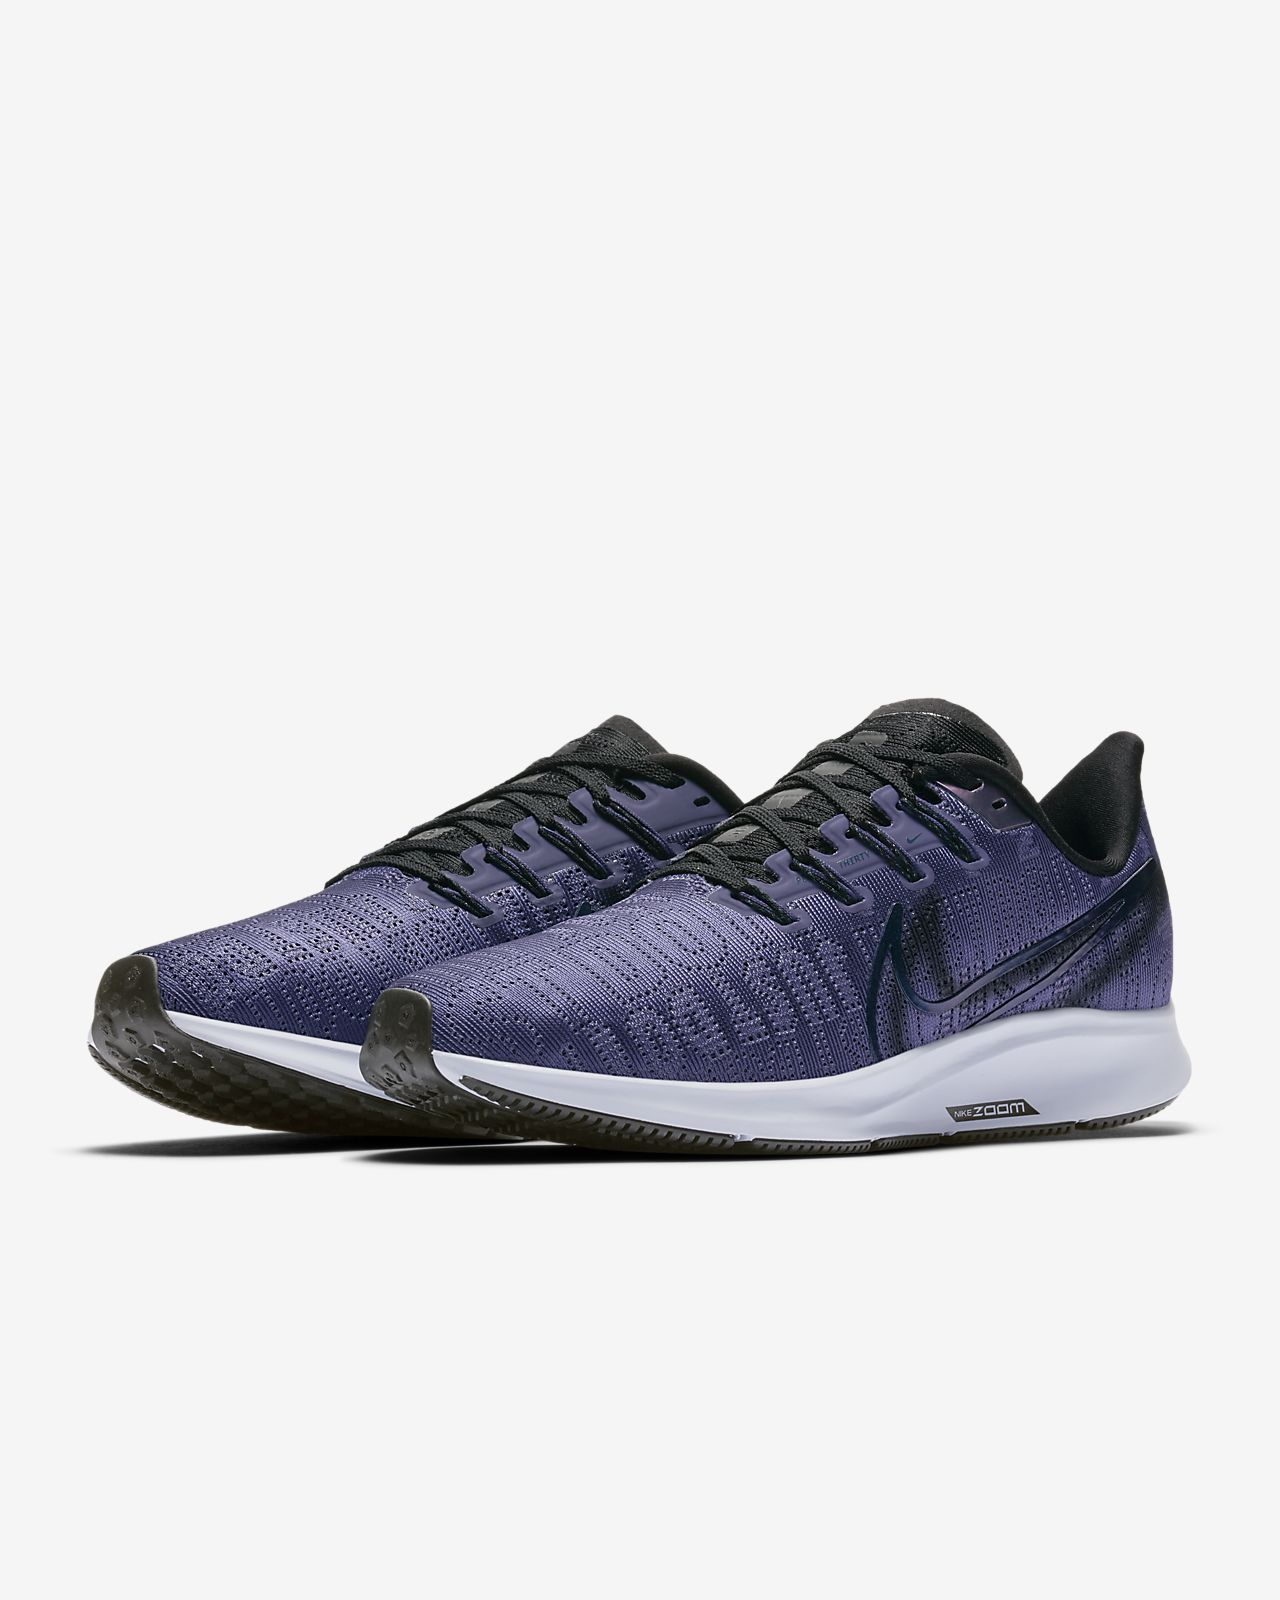 Nike Air Zoom Pegasus 36 Premium Rise Women's Running Shoe